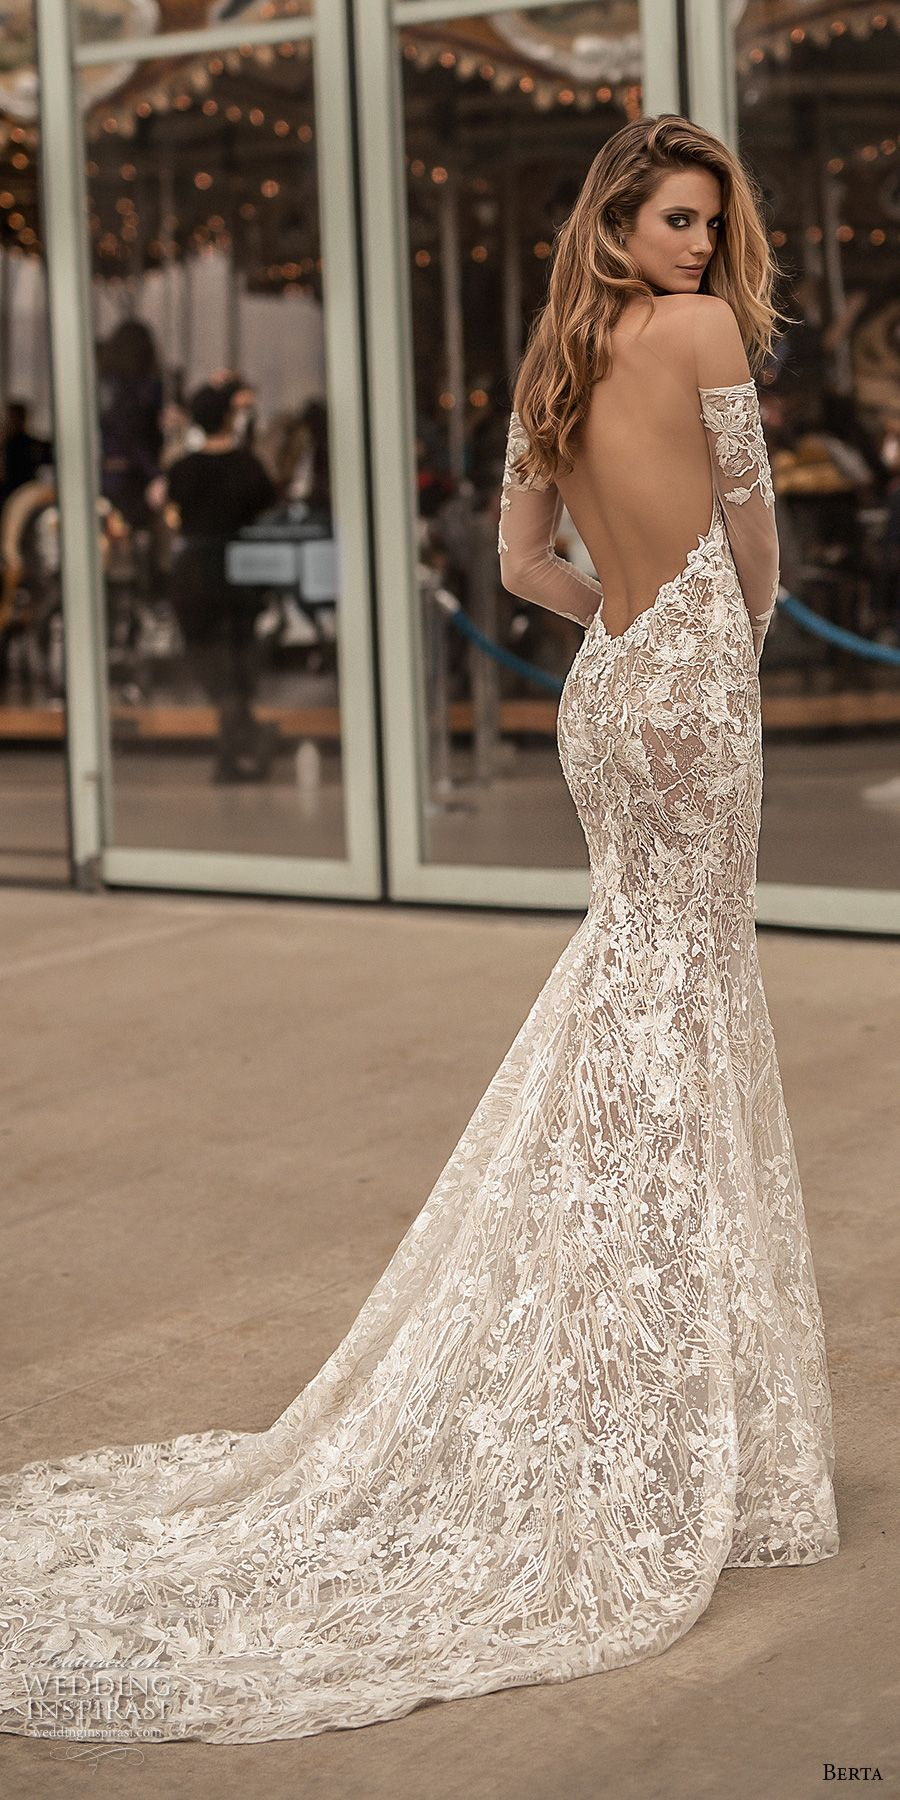 dd4cad41479 berta spring 2018 bridal long sleeves off the shoulder sweetheart neckline  full embellishment sexy elegant fit and flare wedding dress open low back  medium ...